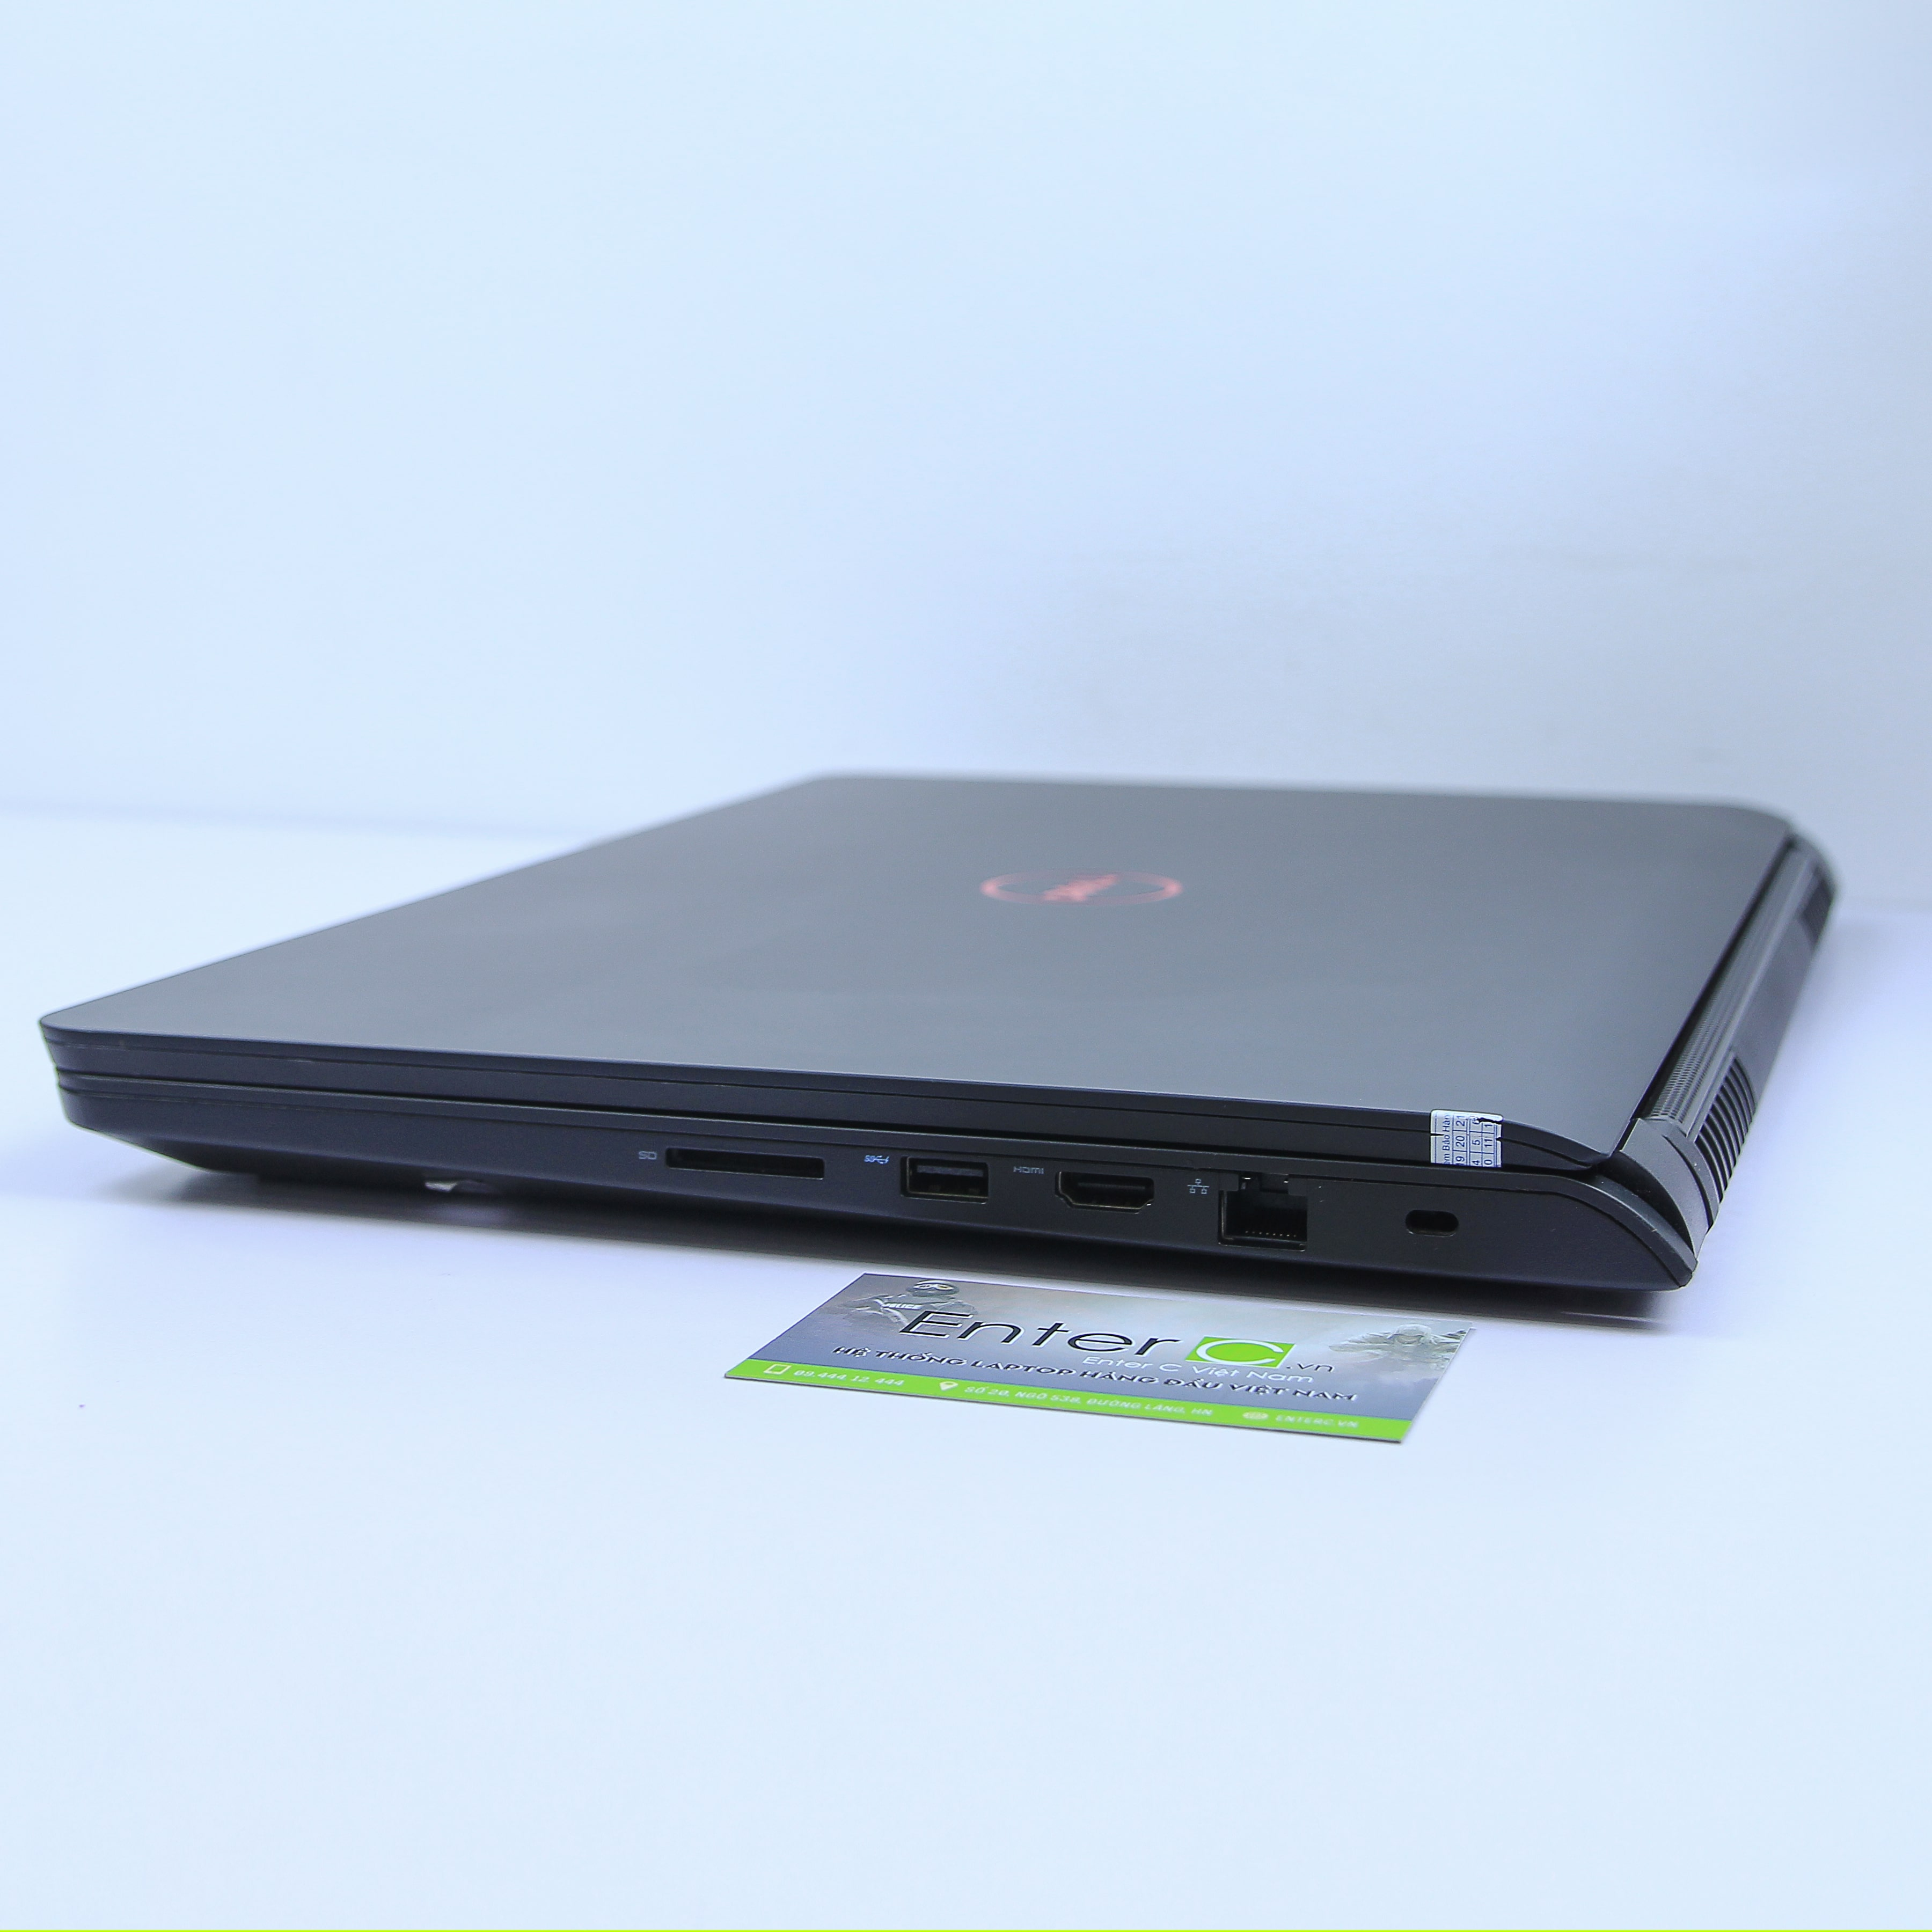 Dell Inspiron 5577 cũ